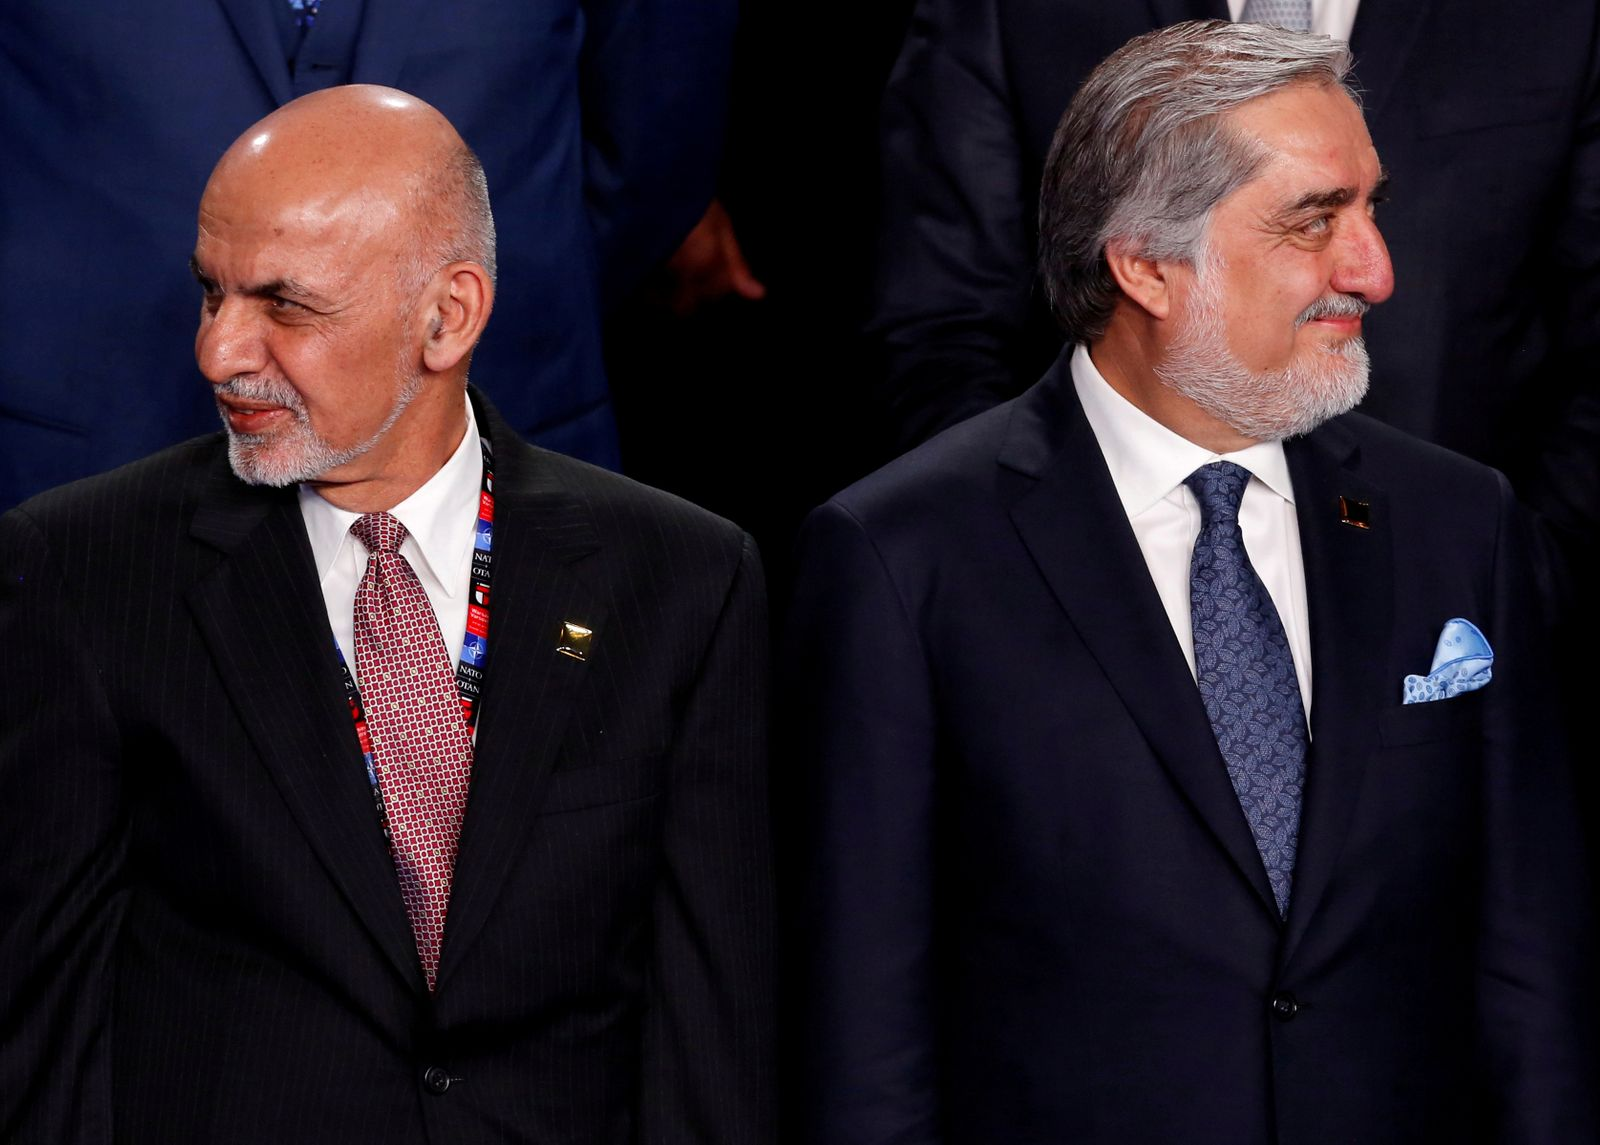 FILE PHOTO: FILE PHOTO: Ghani and Abdullah participate in a family photo with Ghani and Abdullah at the NATO Summit in Warsaw, Poland